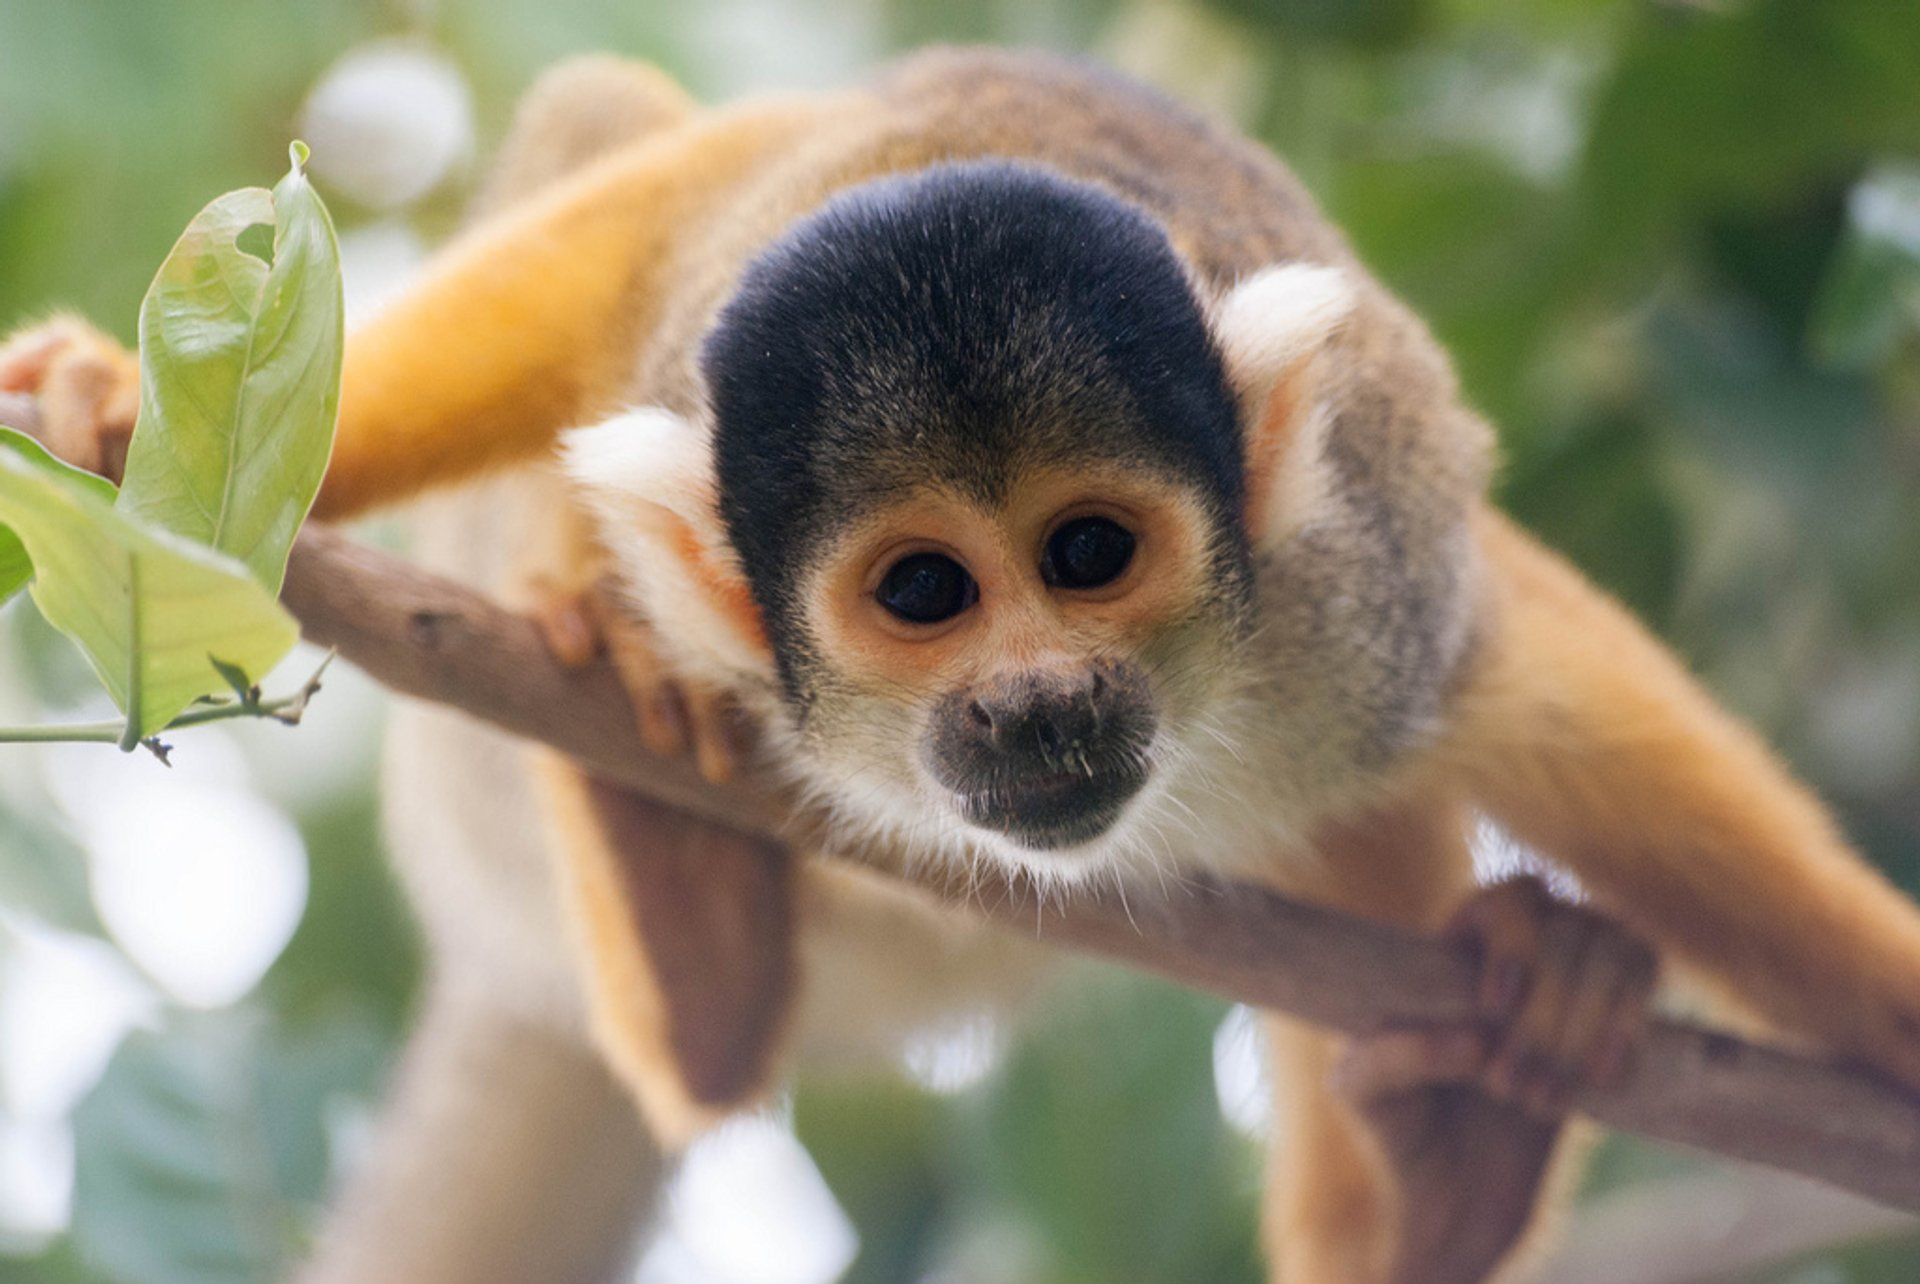 Squirrel Monkeys in Bolivia 2020 - Best Time